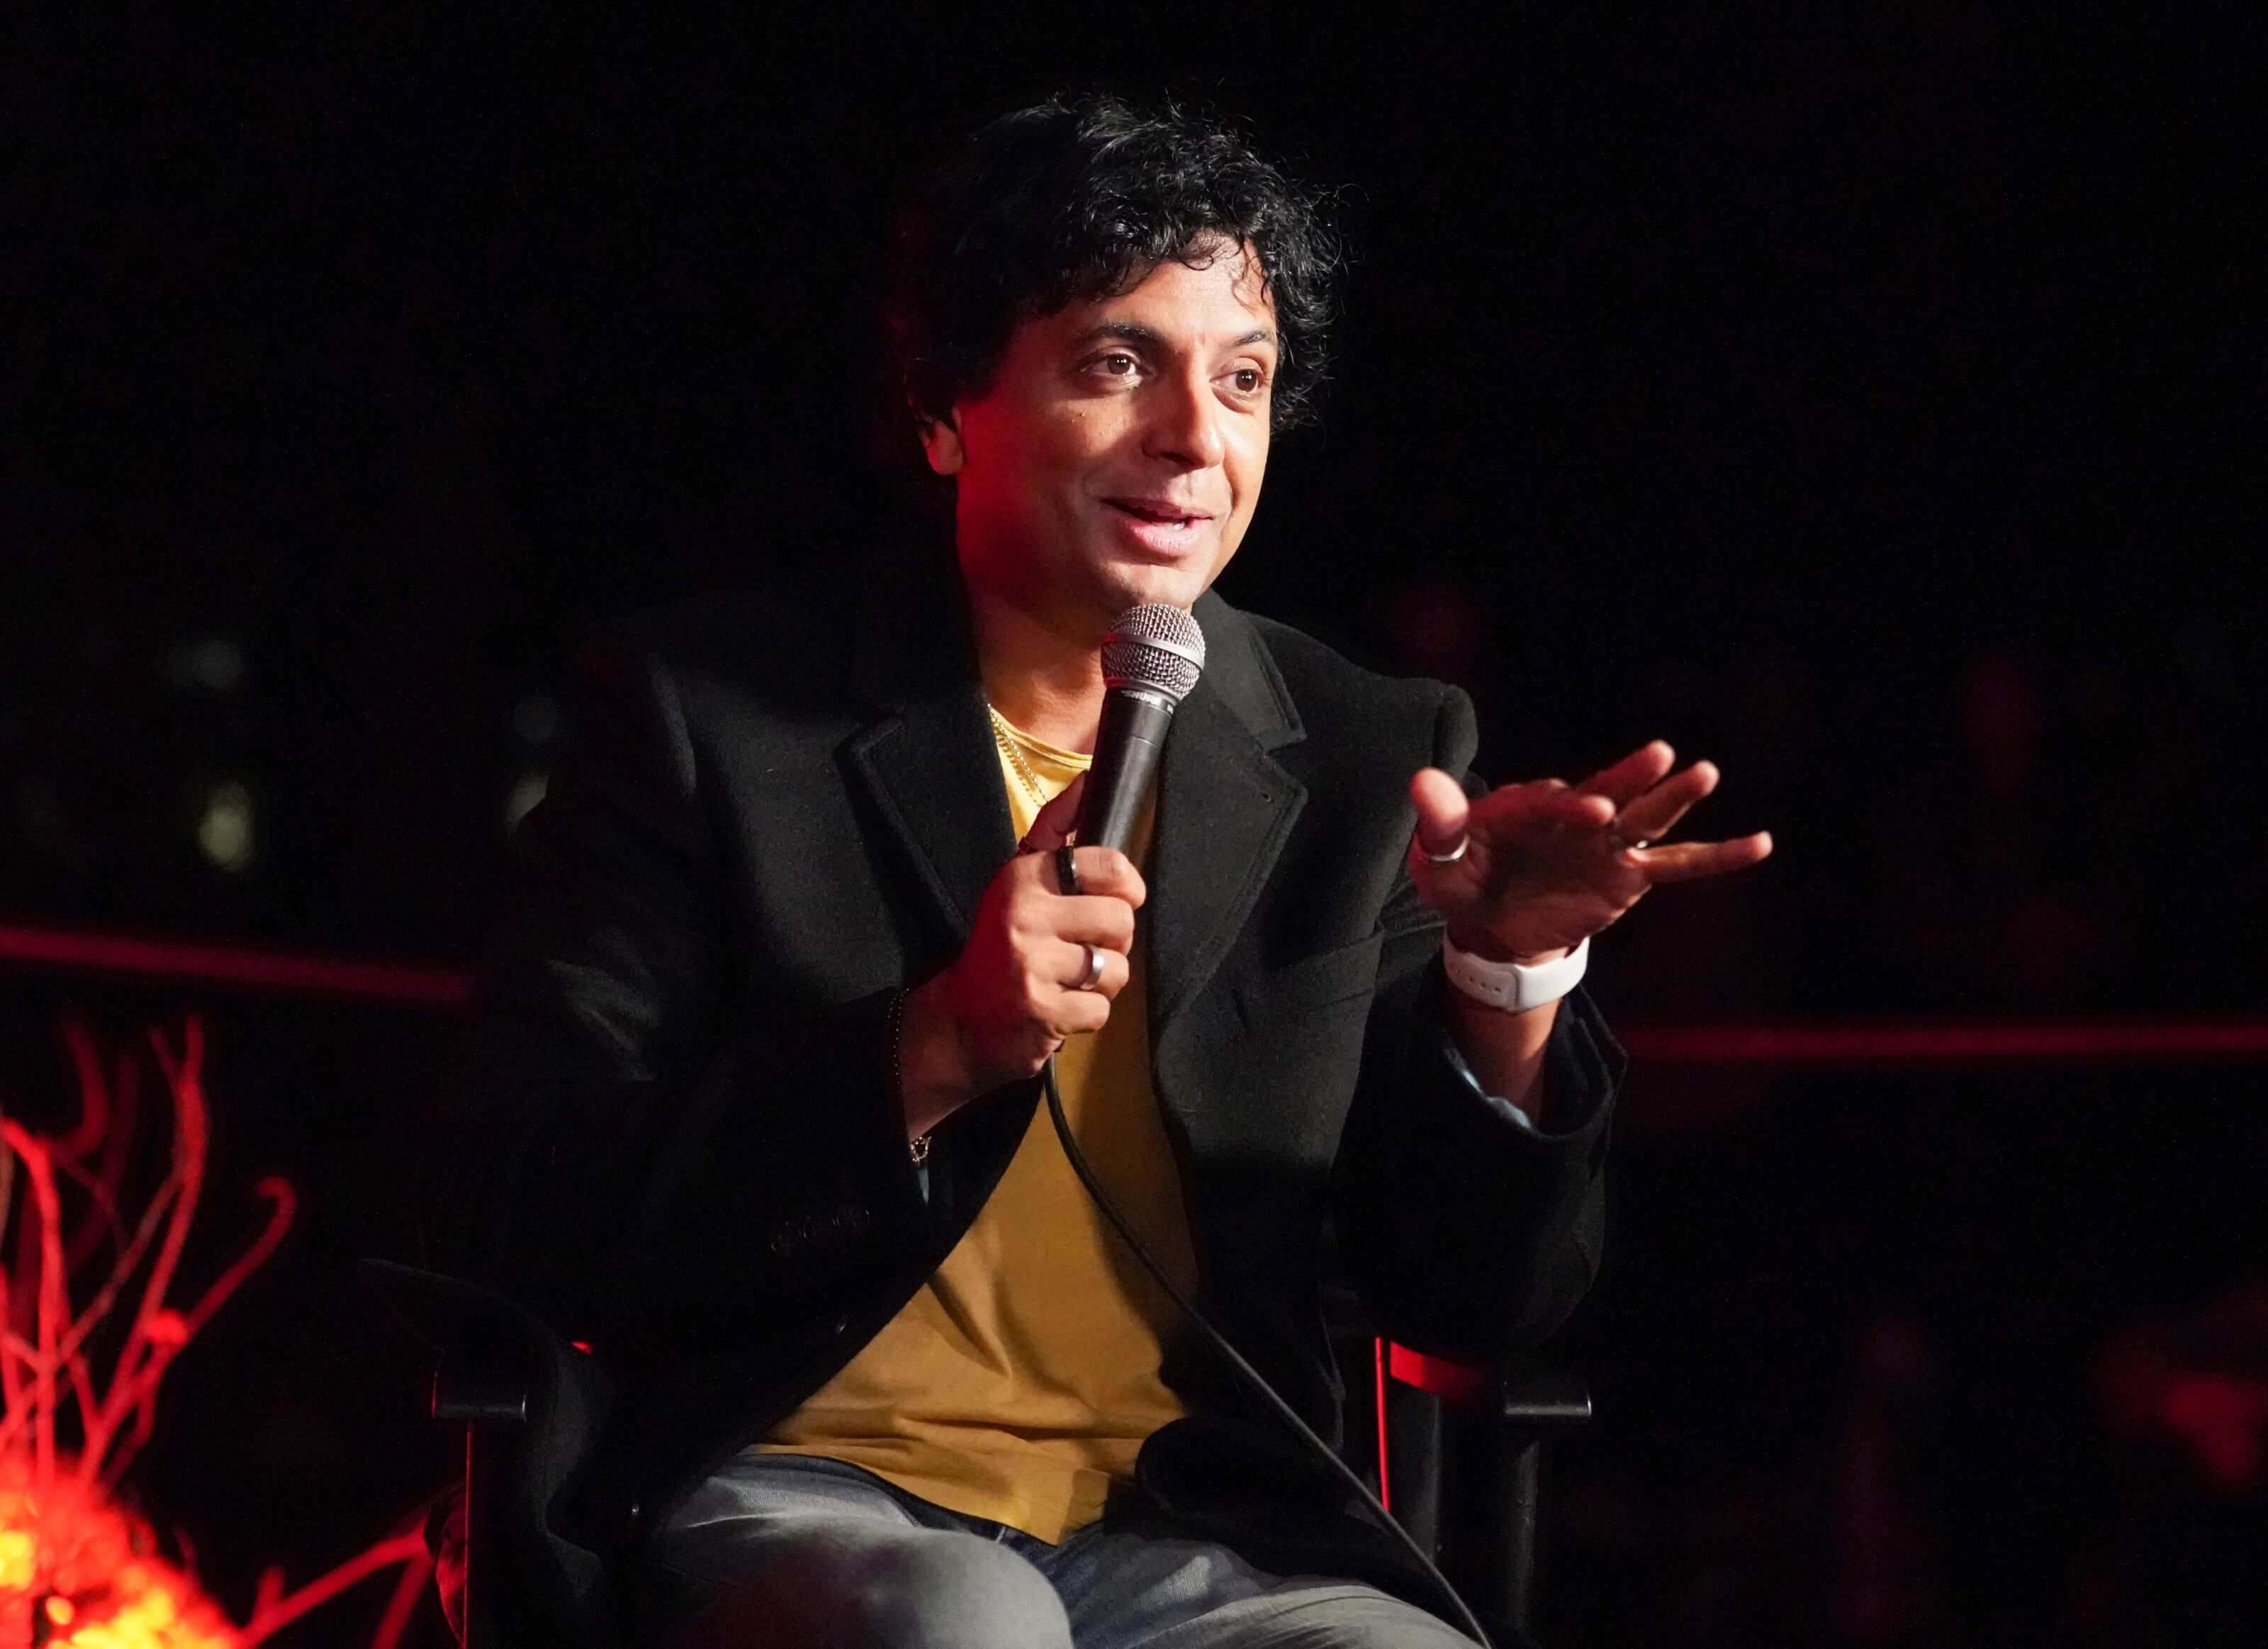 Director M. Night Shyamalan doesn't consider his movies 'horror'